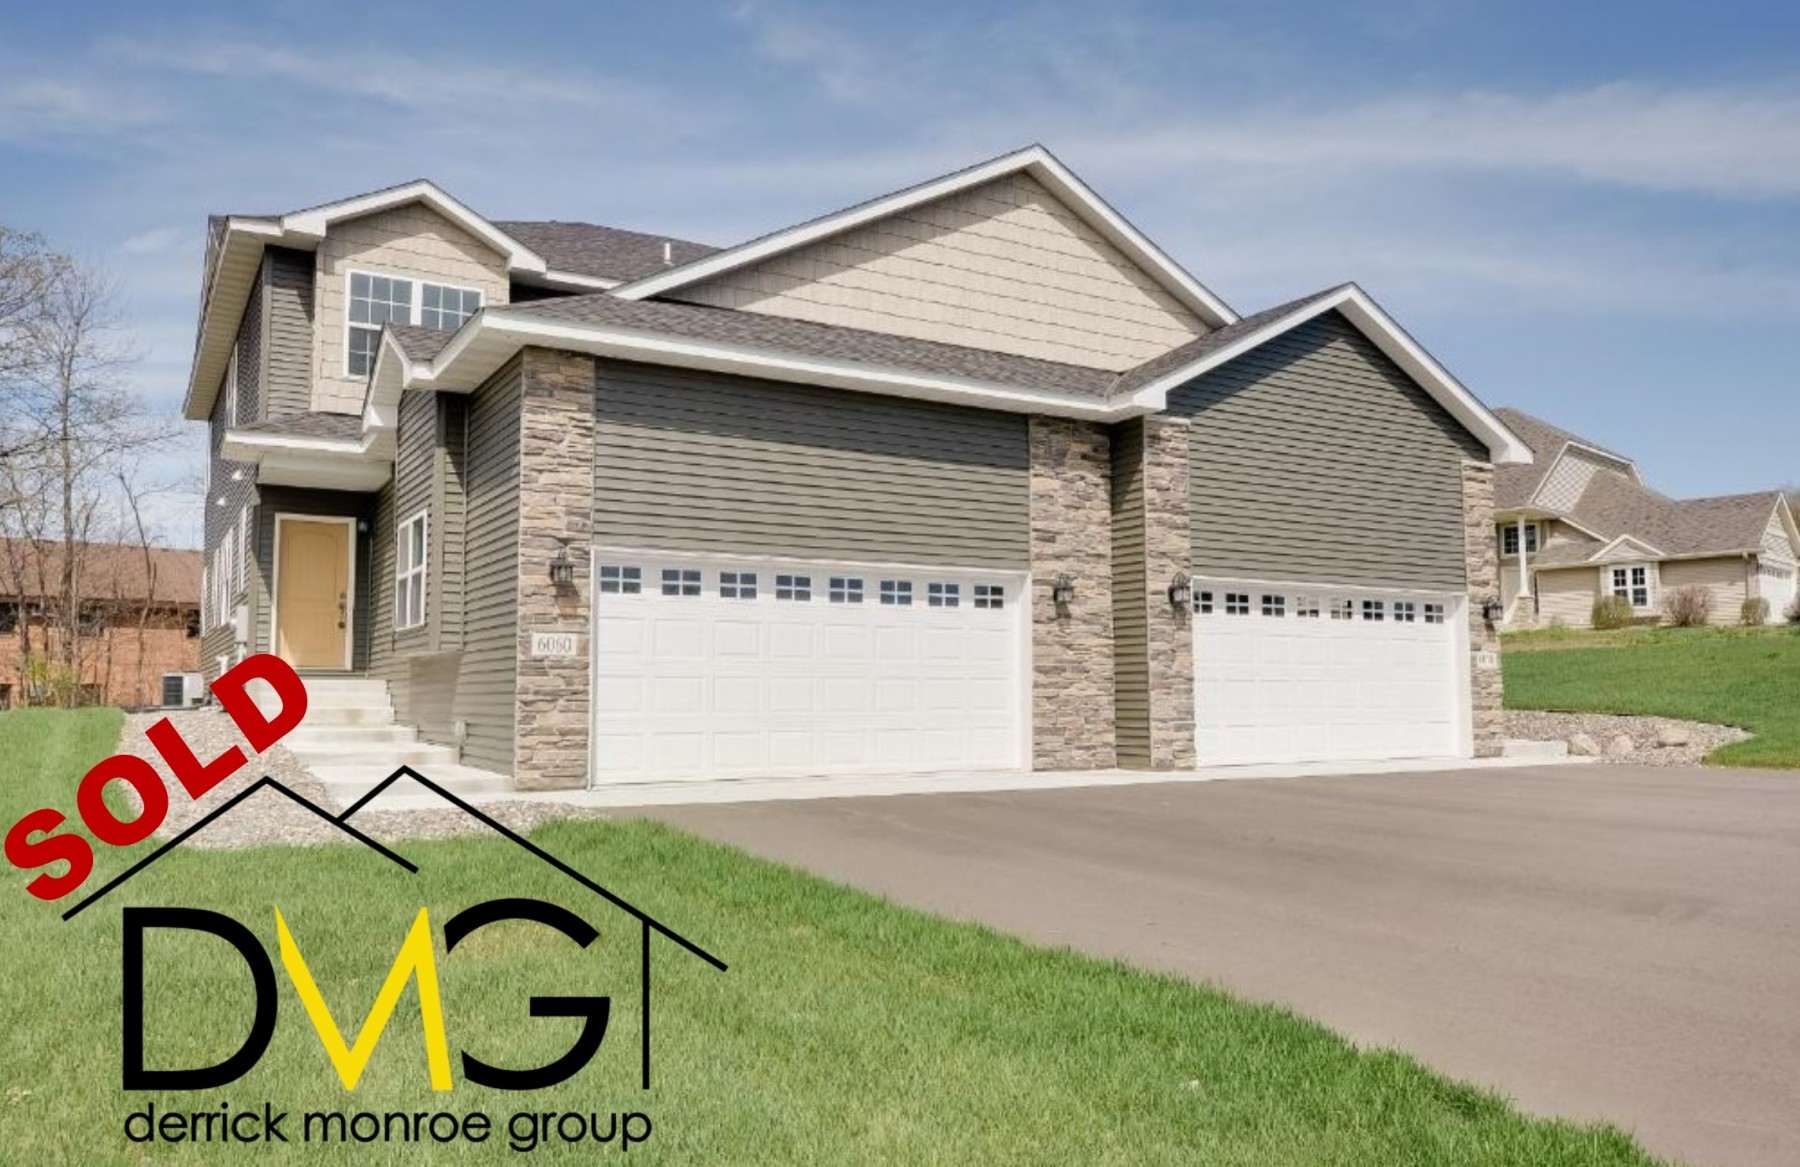 townhome sold in rockford by derrick monroe